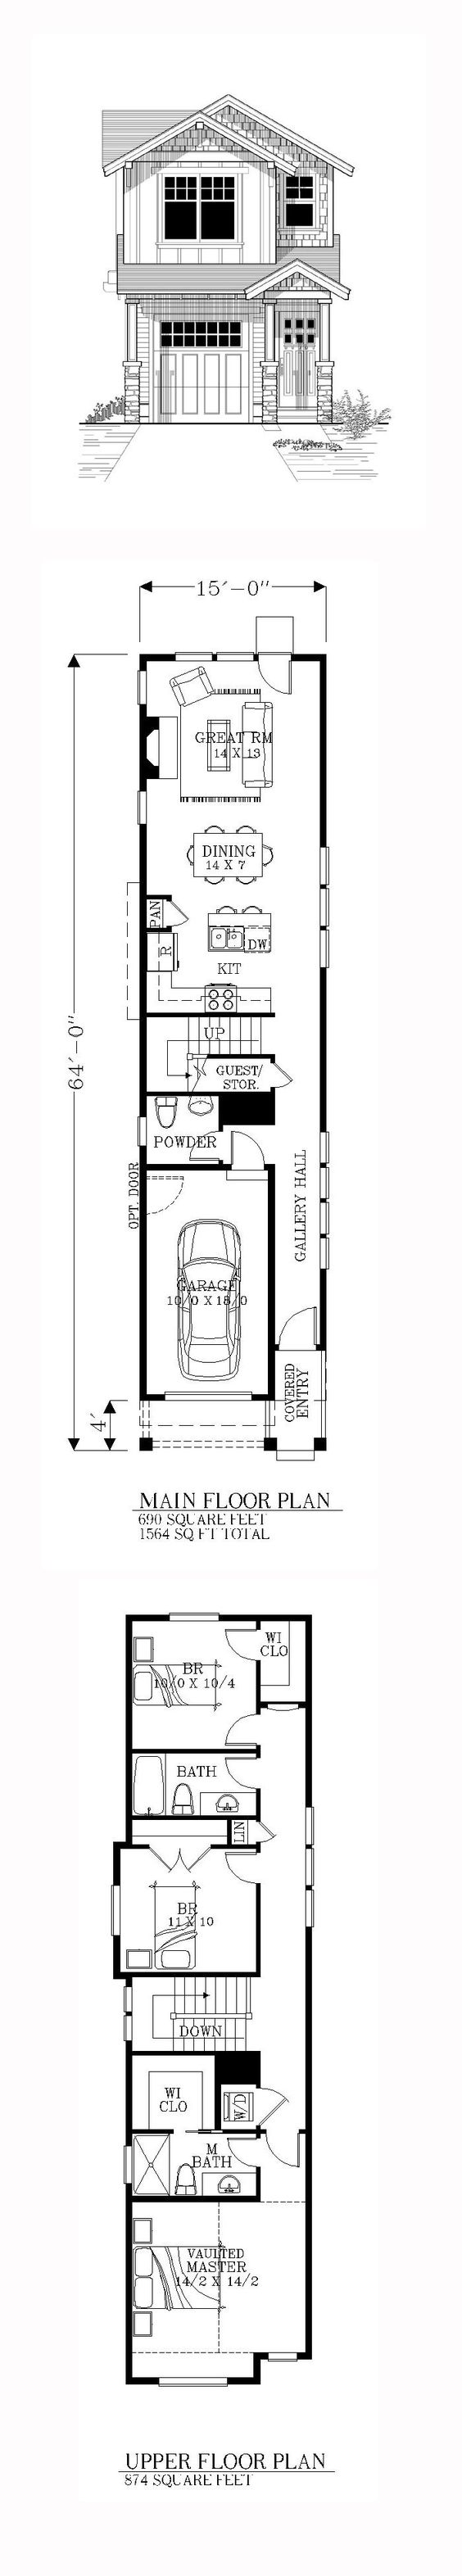 Narrow Lot House Plan 46245 | Total Living Area: 1564 sq. ft., 3 bedrooms and 2.5 bathrooms. Copyright by designer. #narrowlothome